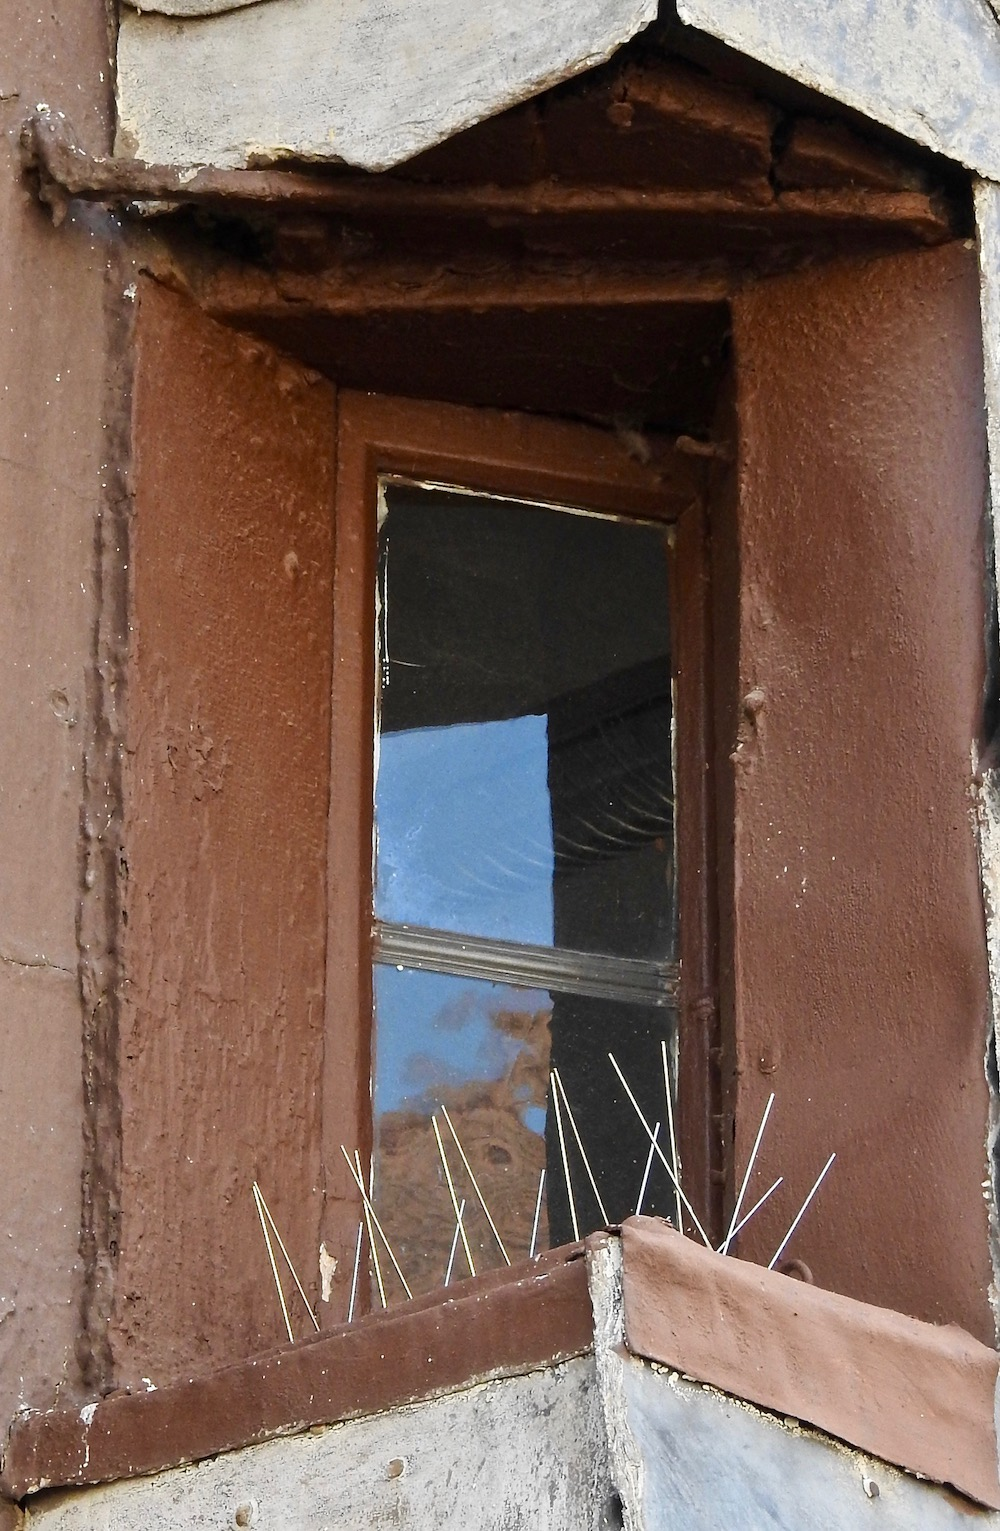 A narrow window used for spying on neighbors without being seen.